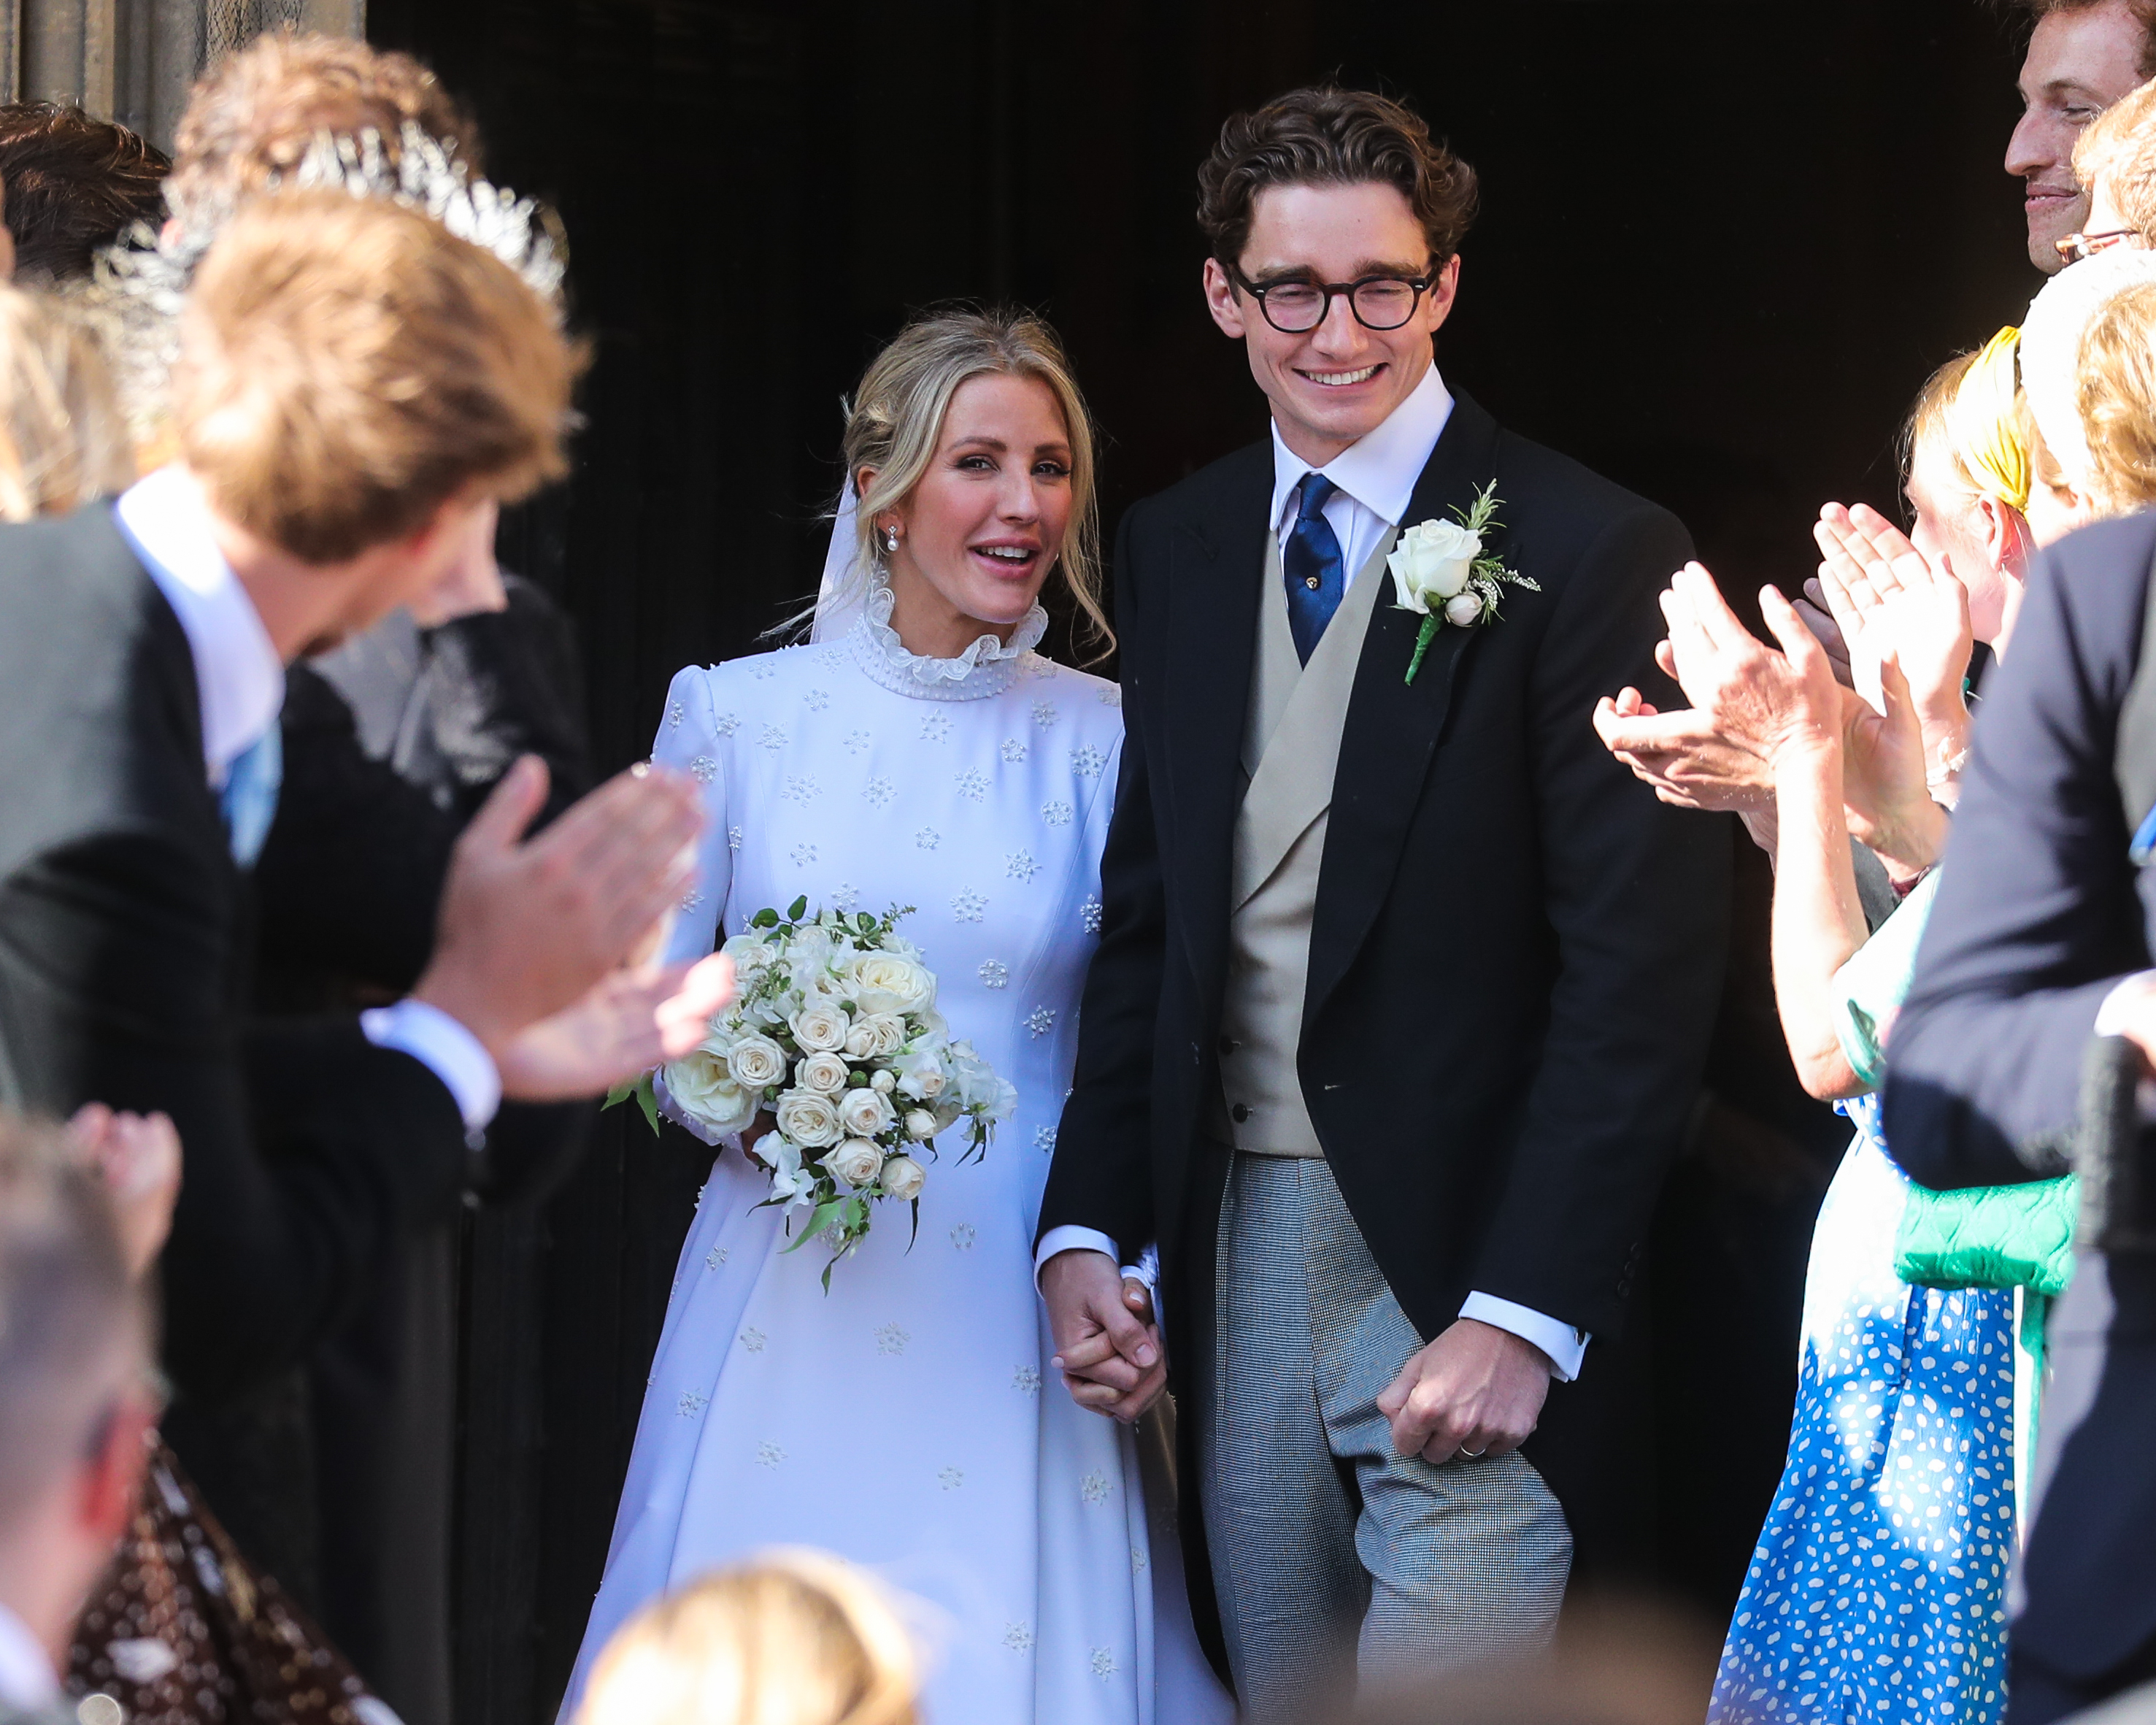 Ellie Goulding admits she's living apart from husband Caspar Jopling after less than a year of marriage